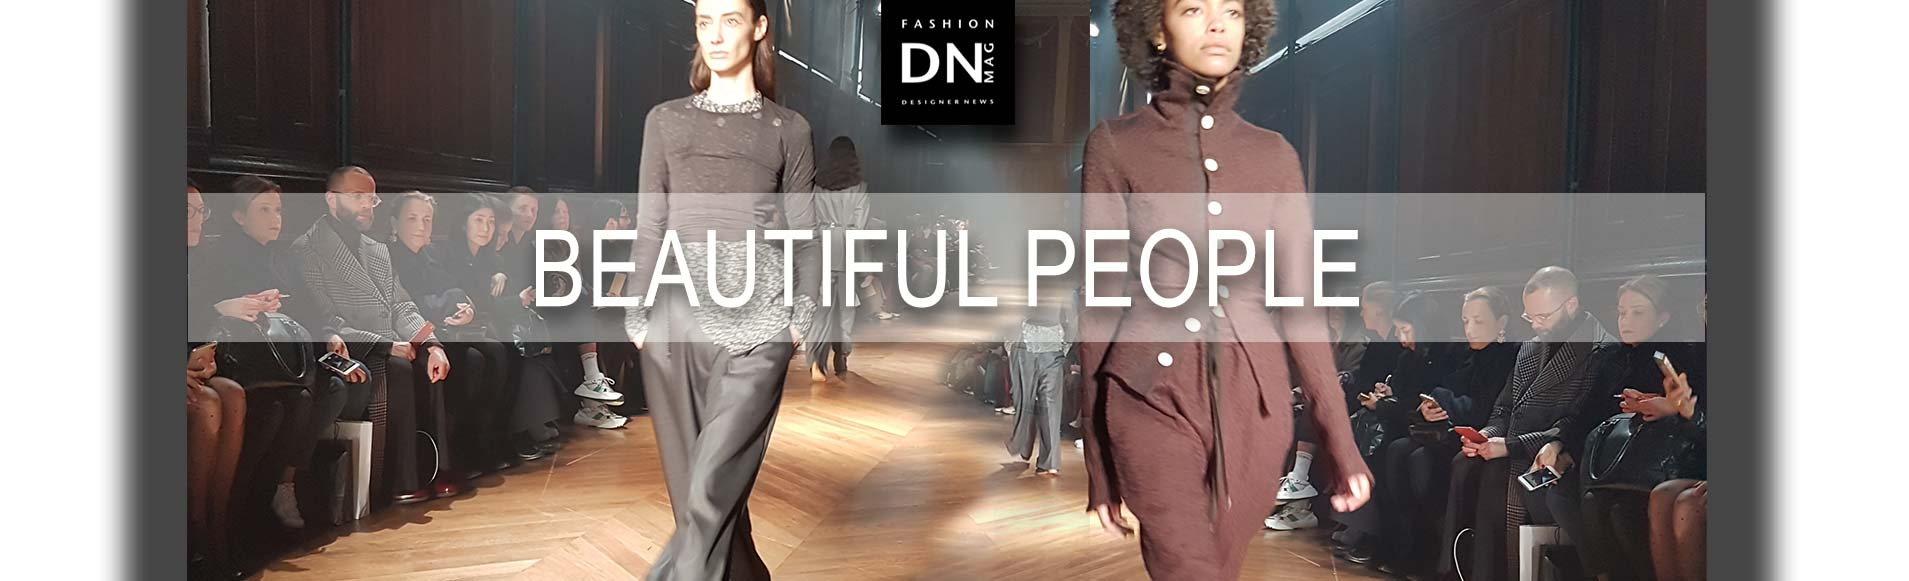 DNMAG-BEAUTIFUL-PEOPLE-RTW19-FALL19-20